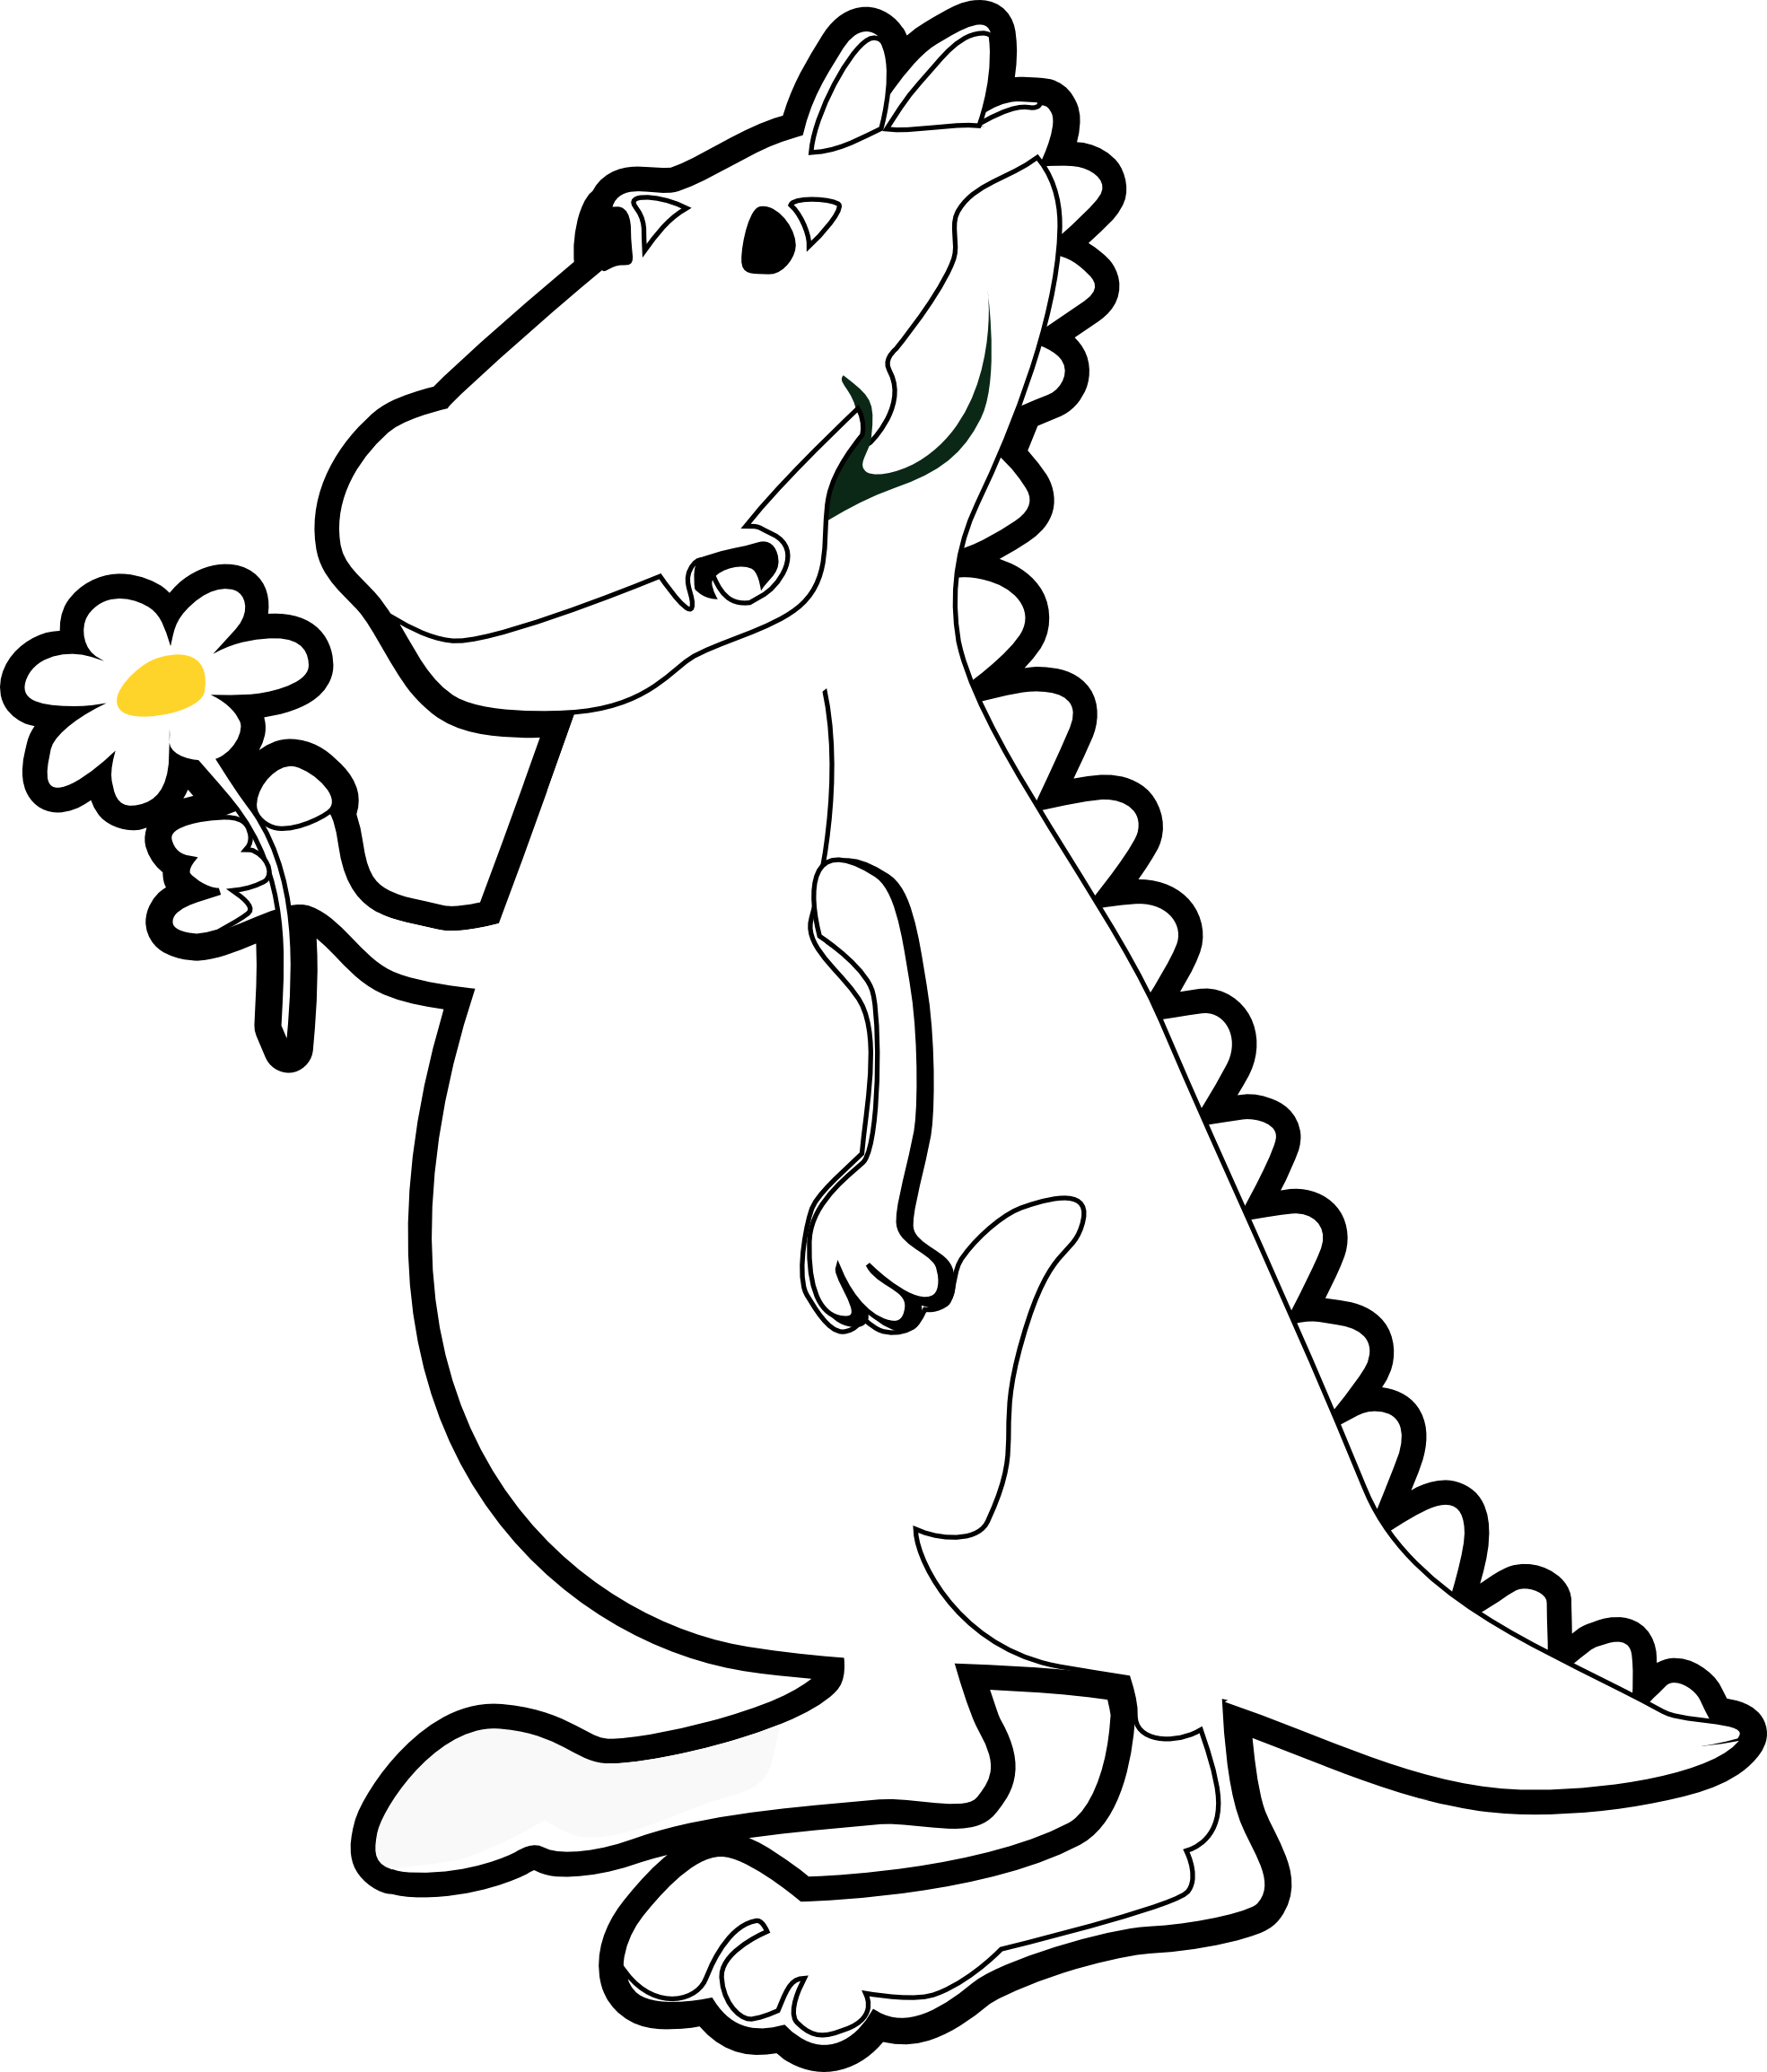 T rex clipart easy dragon. Simple drawing at getdrawings